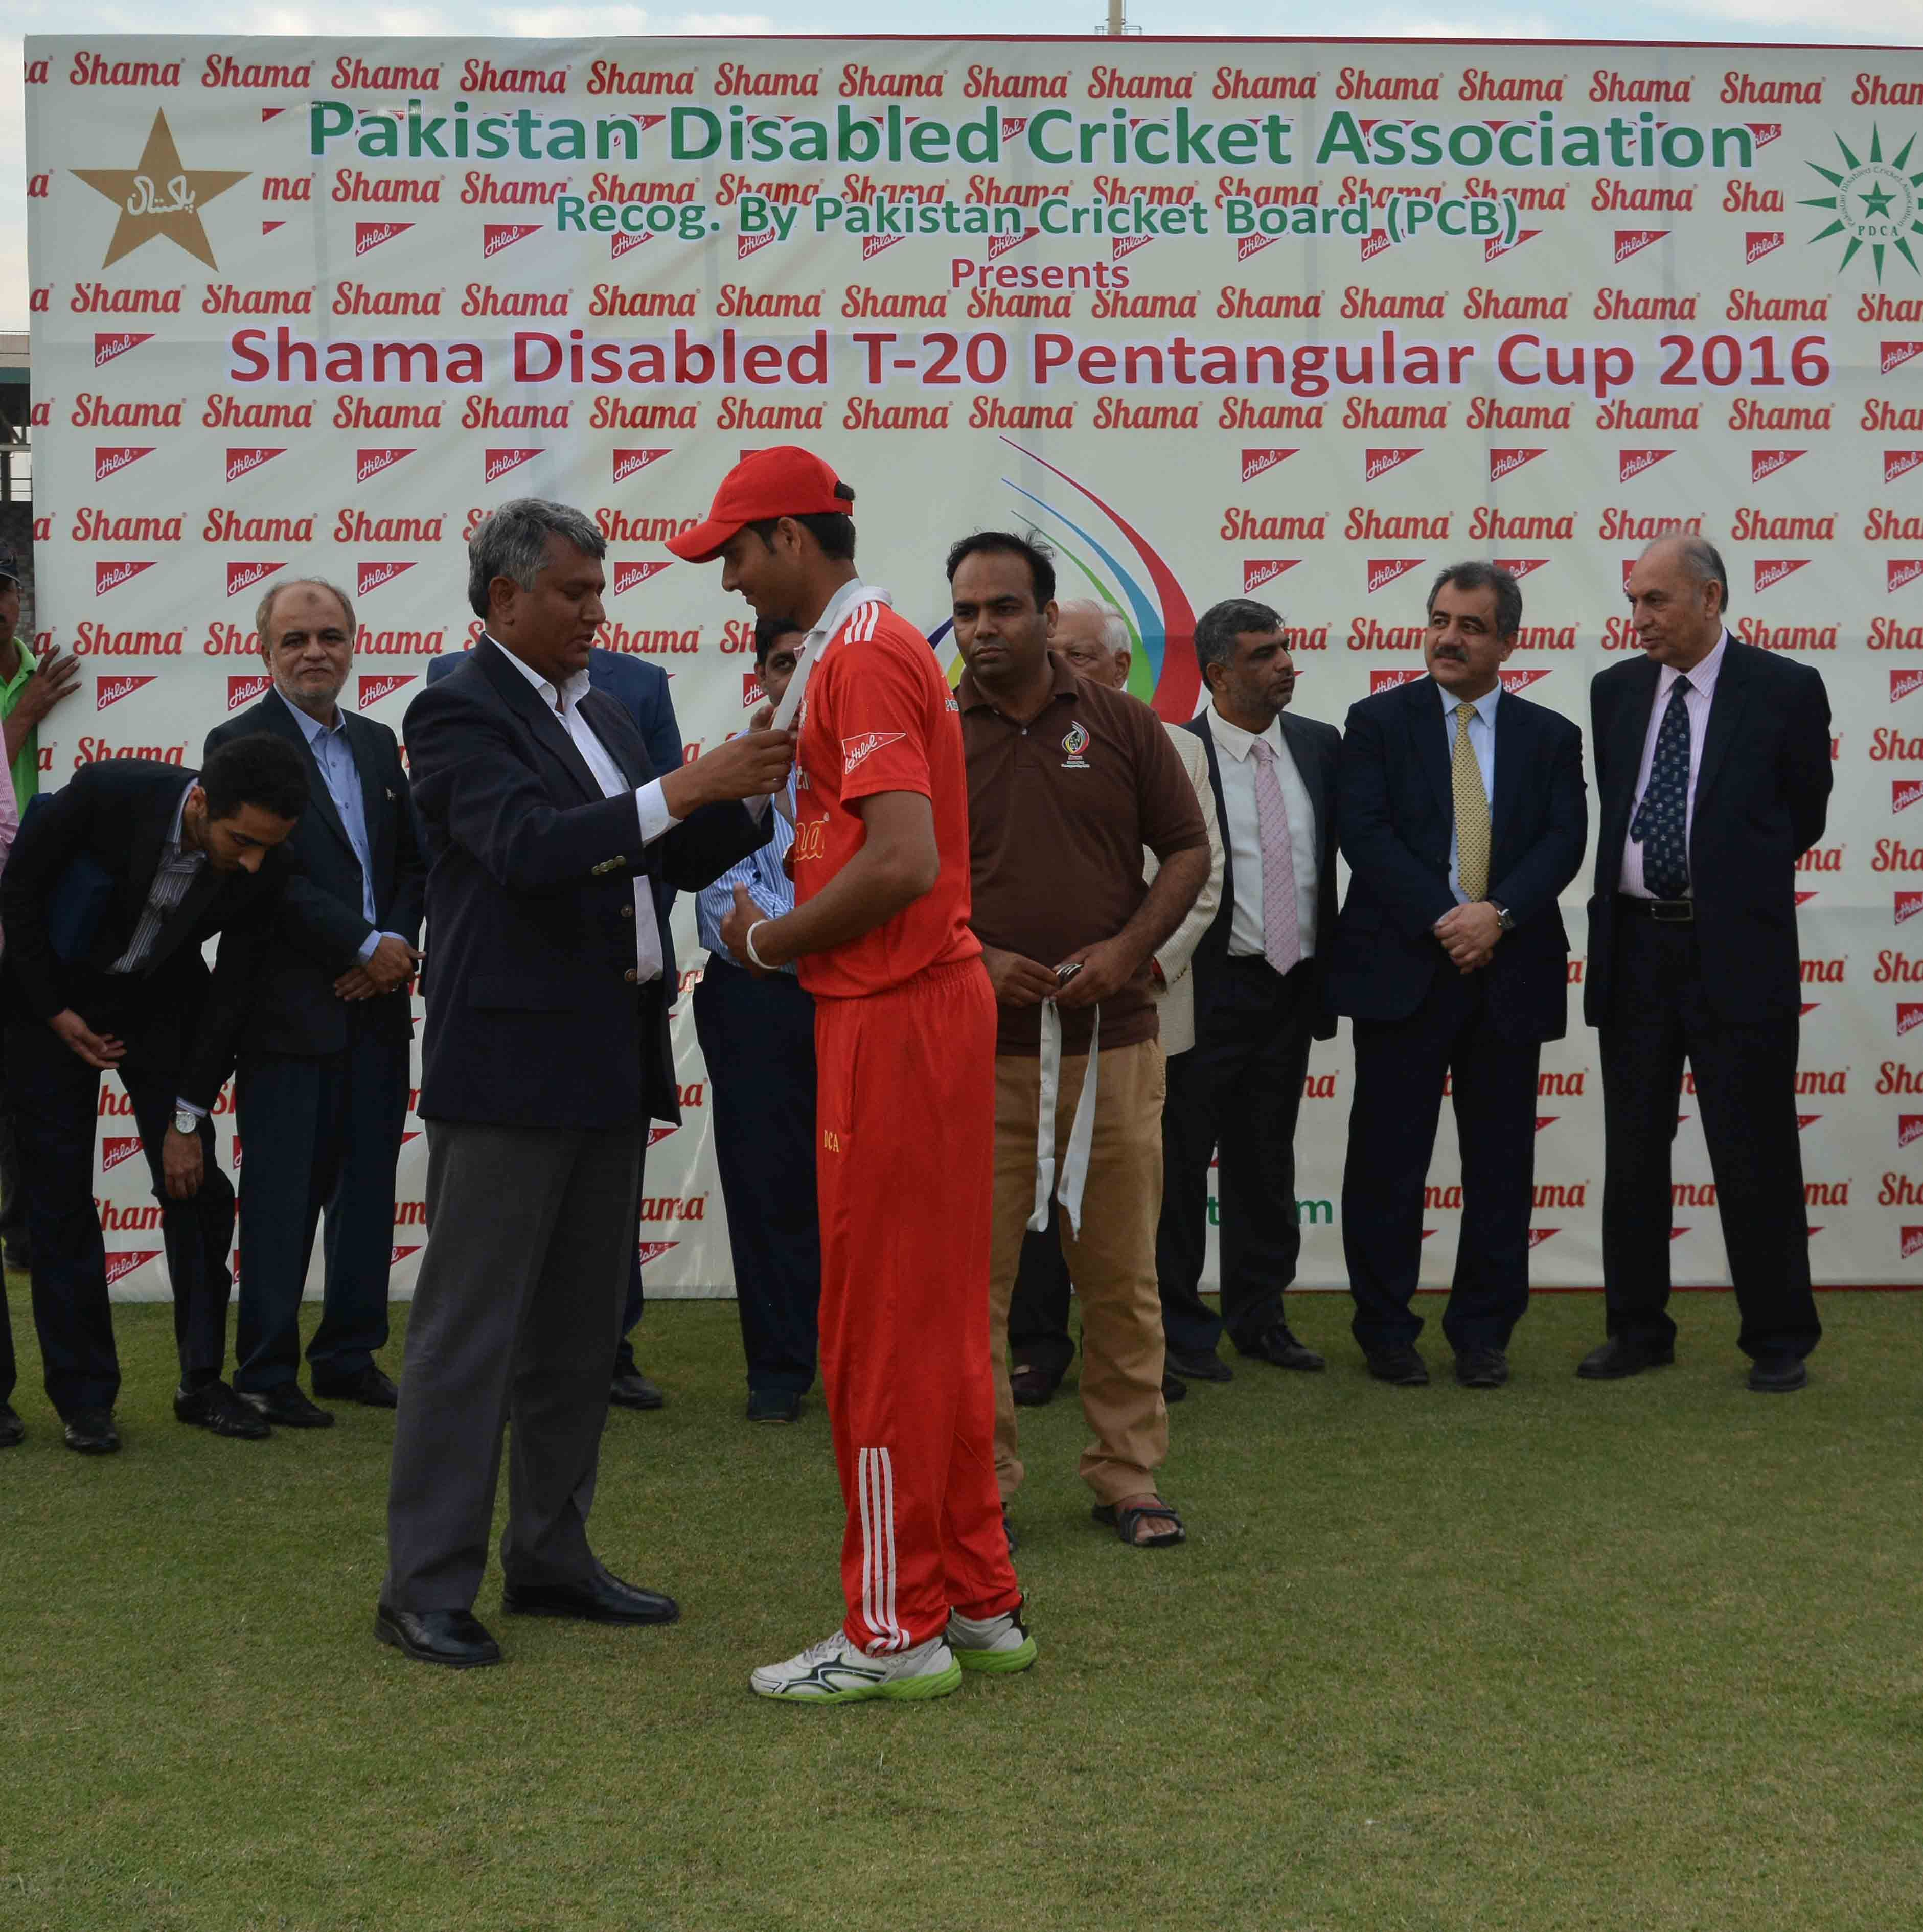 Mr Arshad Khan Gm National Stadium Giving A Medal To Matloob Qureshi Balochistan Captain At National Stadium Karachi National Stadium Balochistan Captain